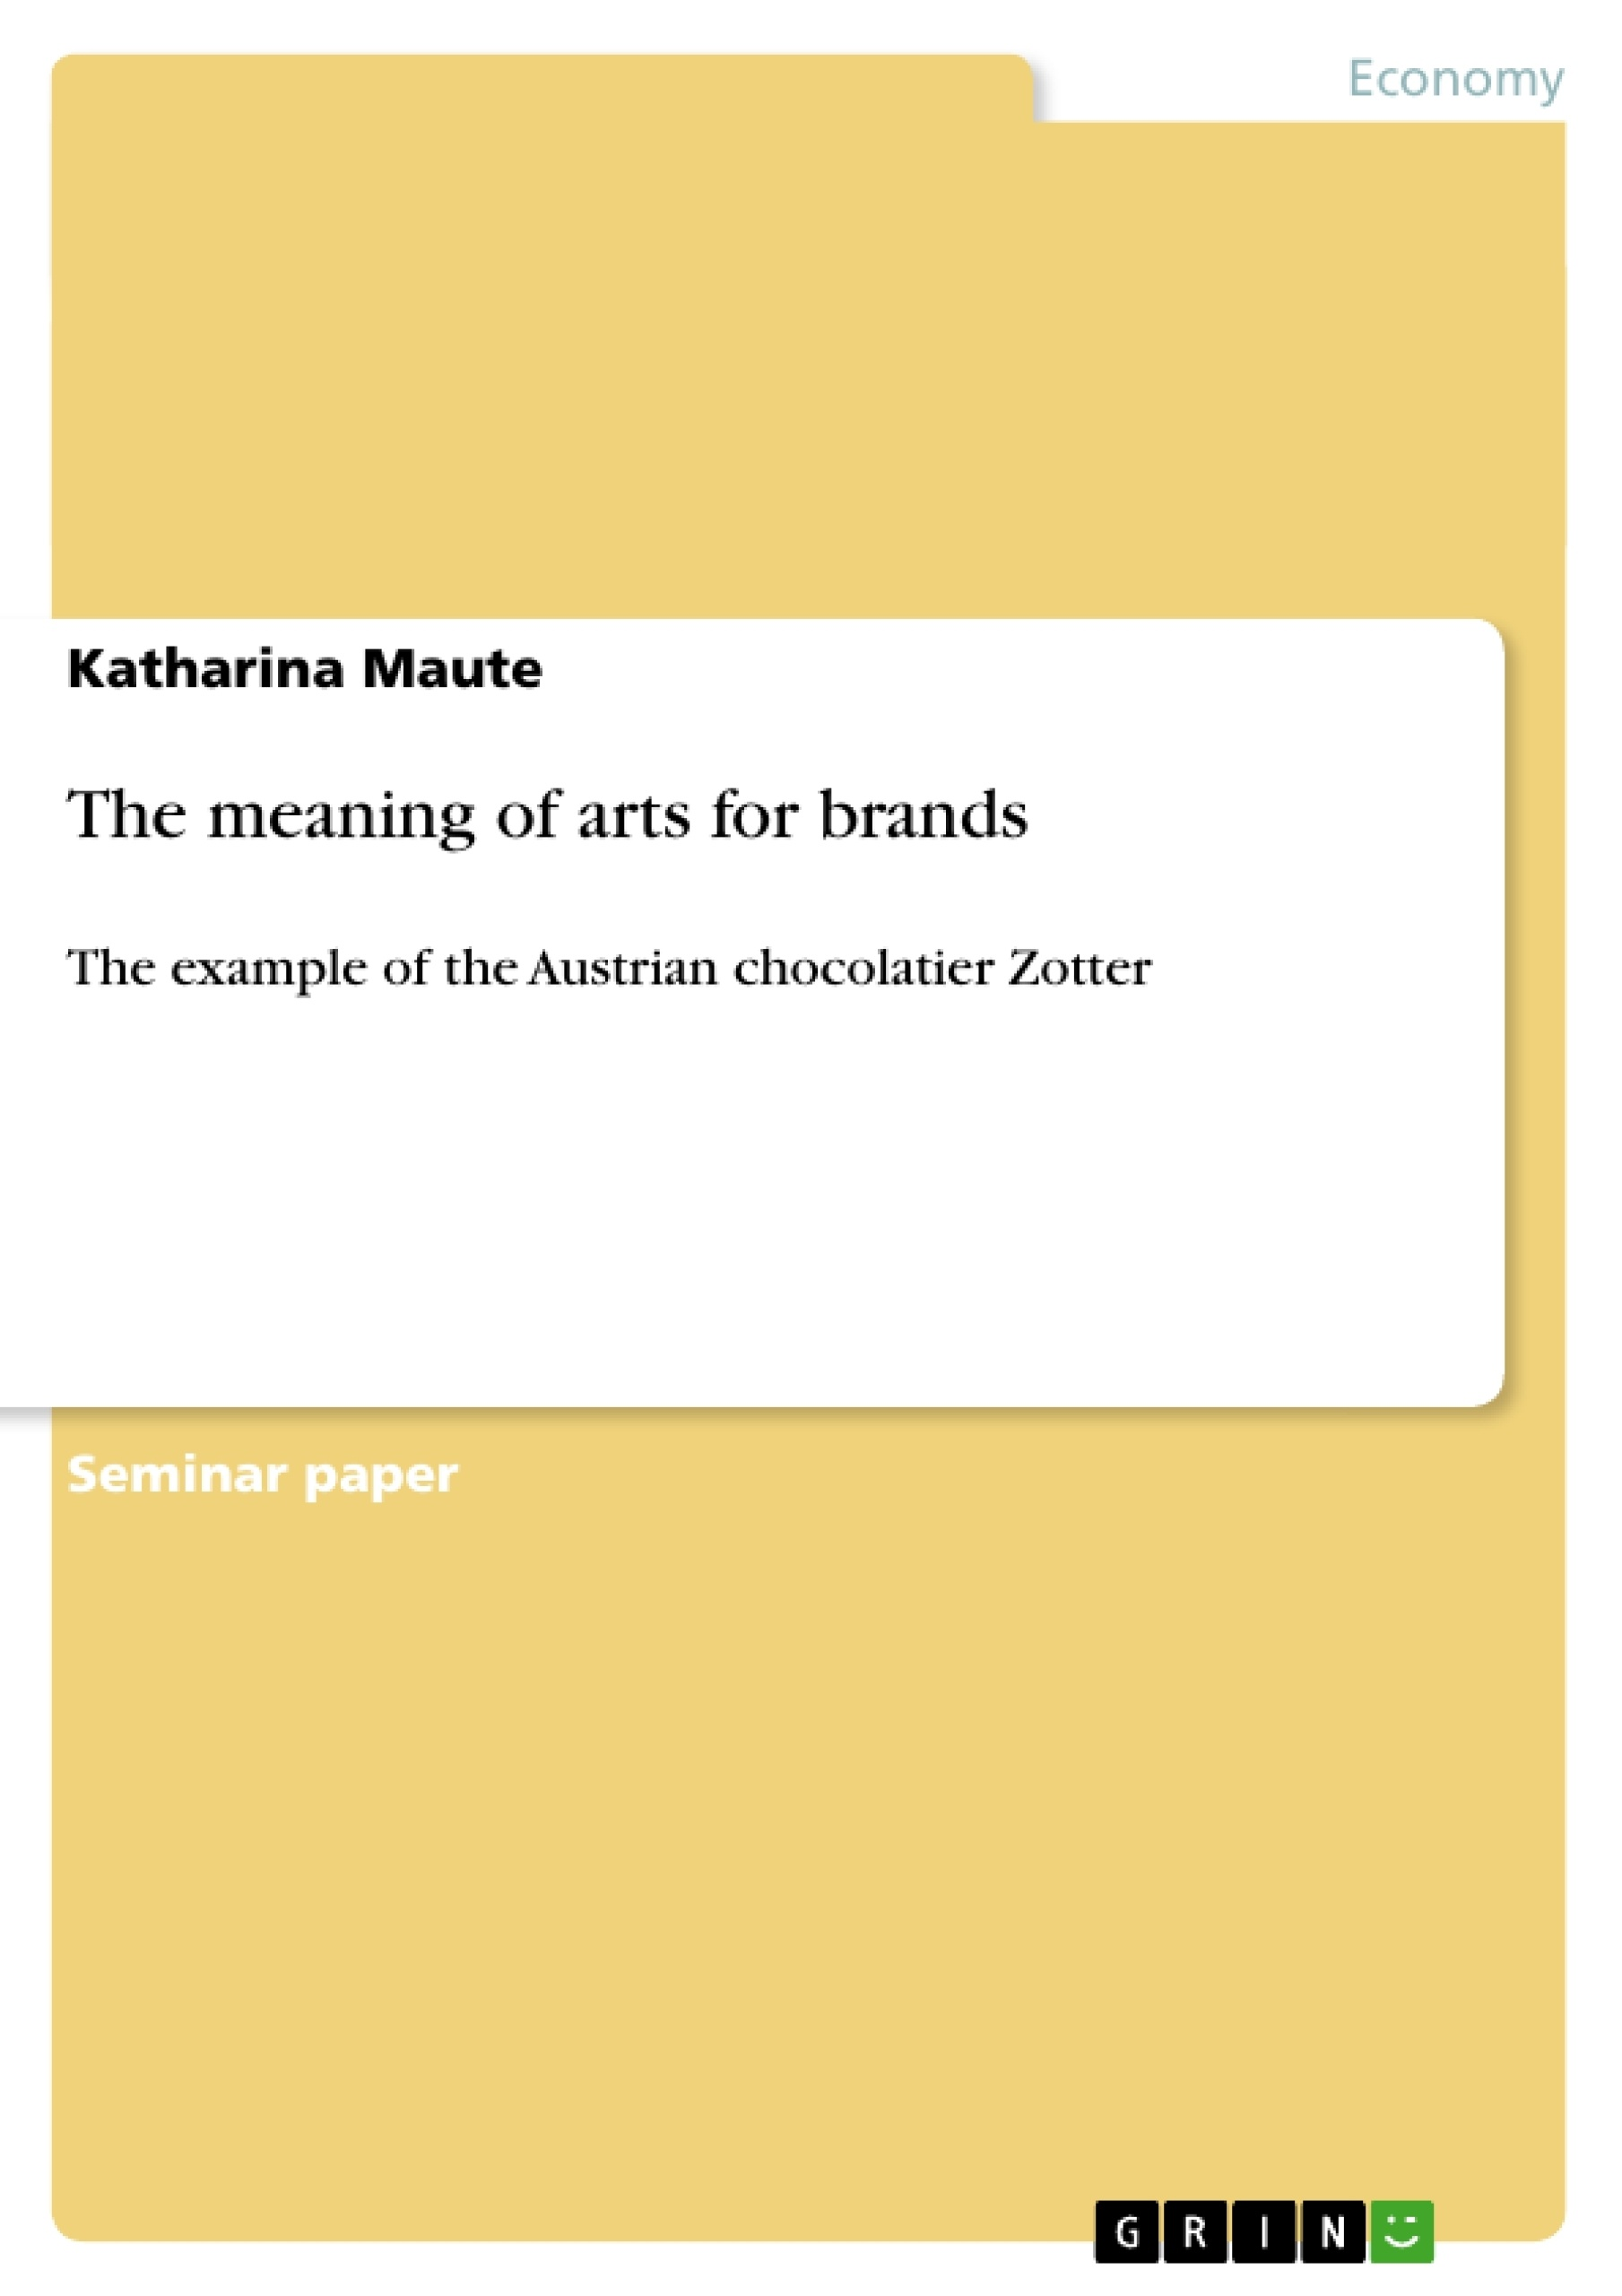 Title: The meaning of arts for brands